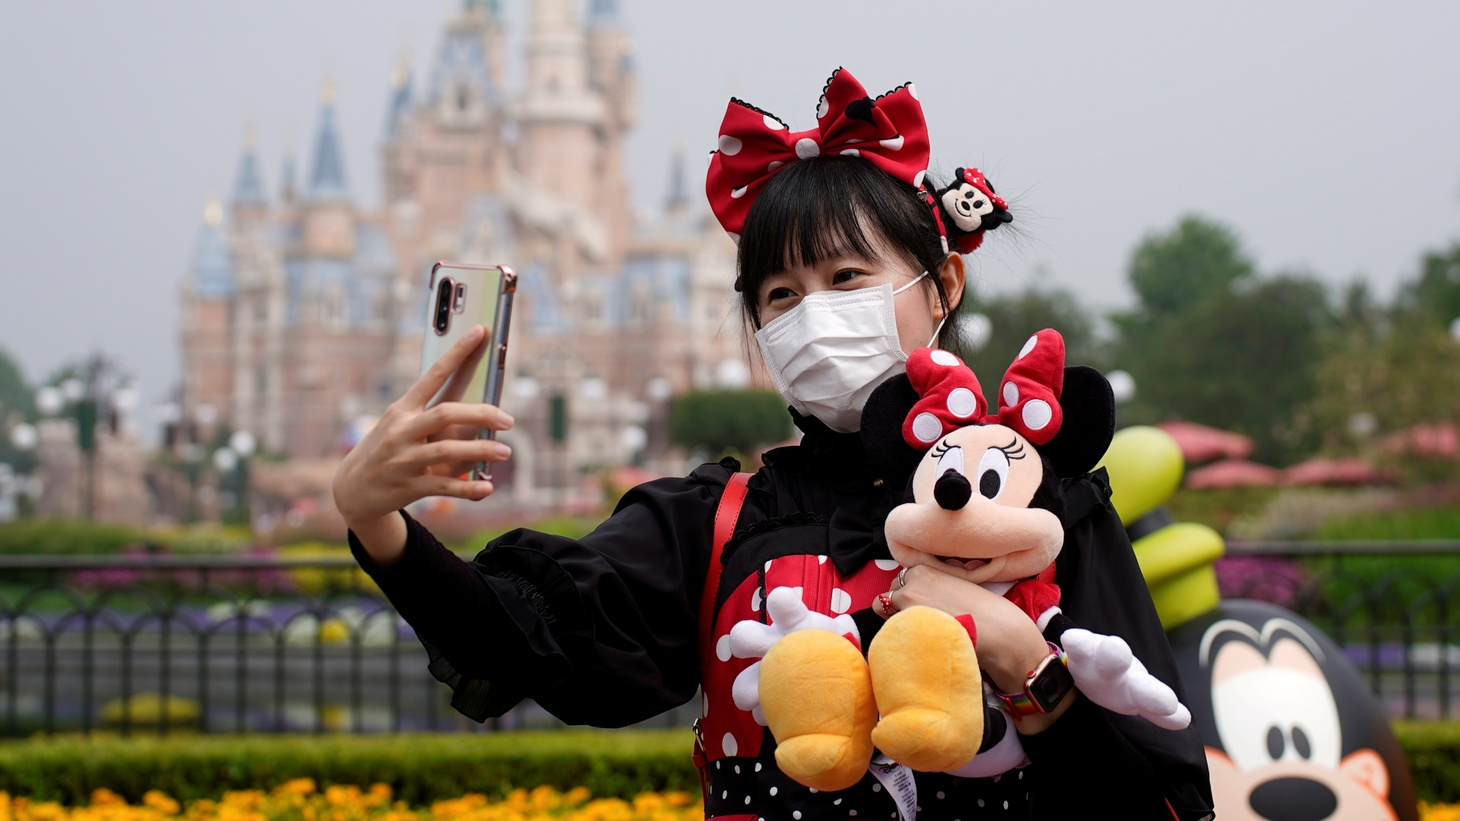 A visitor takes a selfie while wearing a protective face mask at Shanghai Disney Resort as the Shanghai Disneyland theme park reopens following a shutdown due to the COVID-19 outbreak.